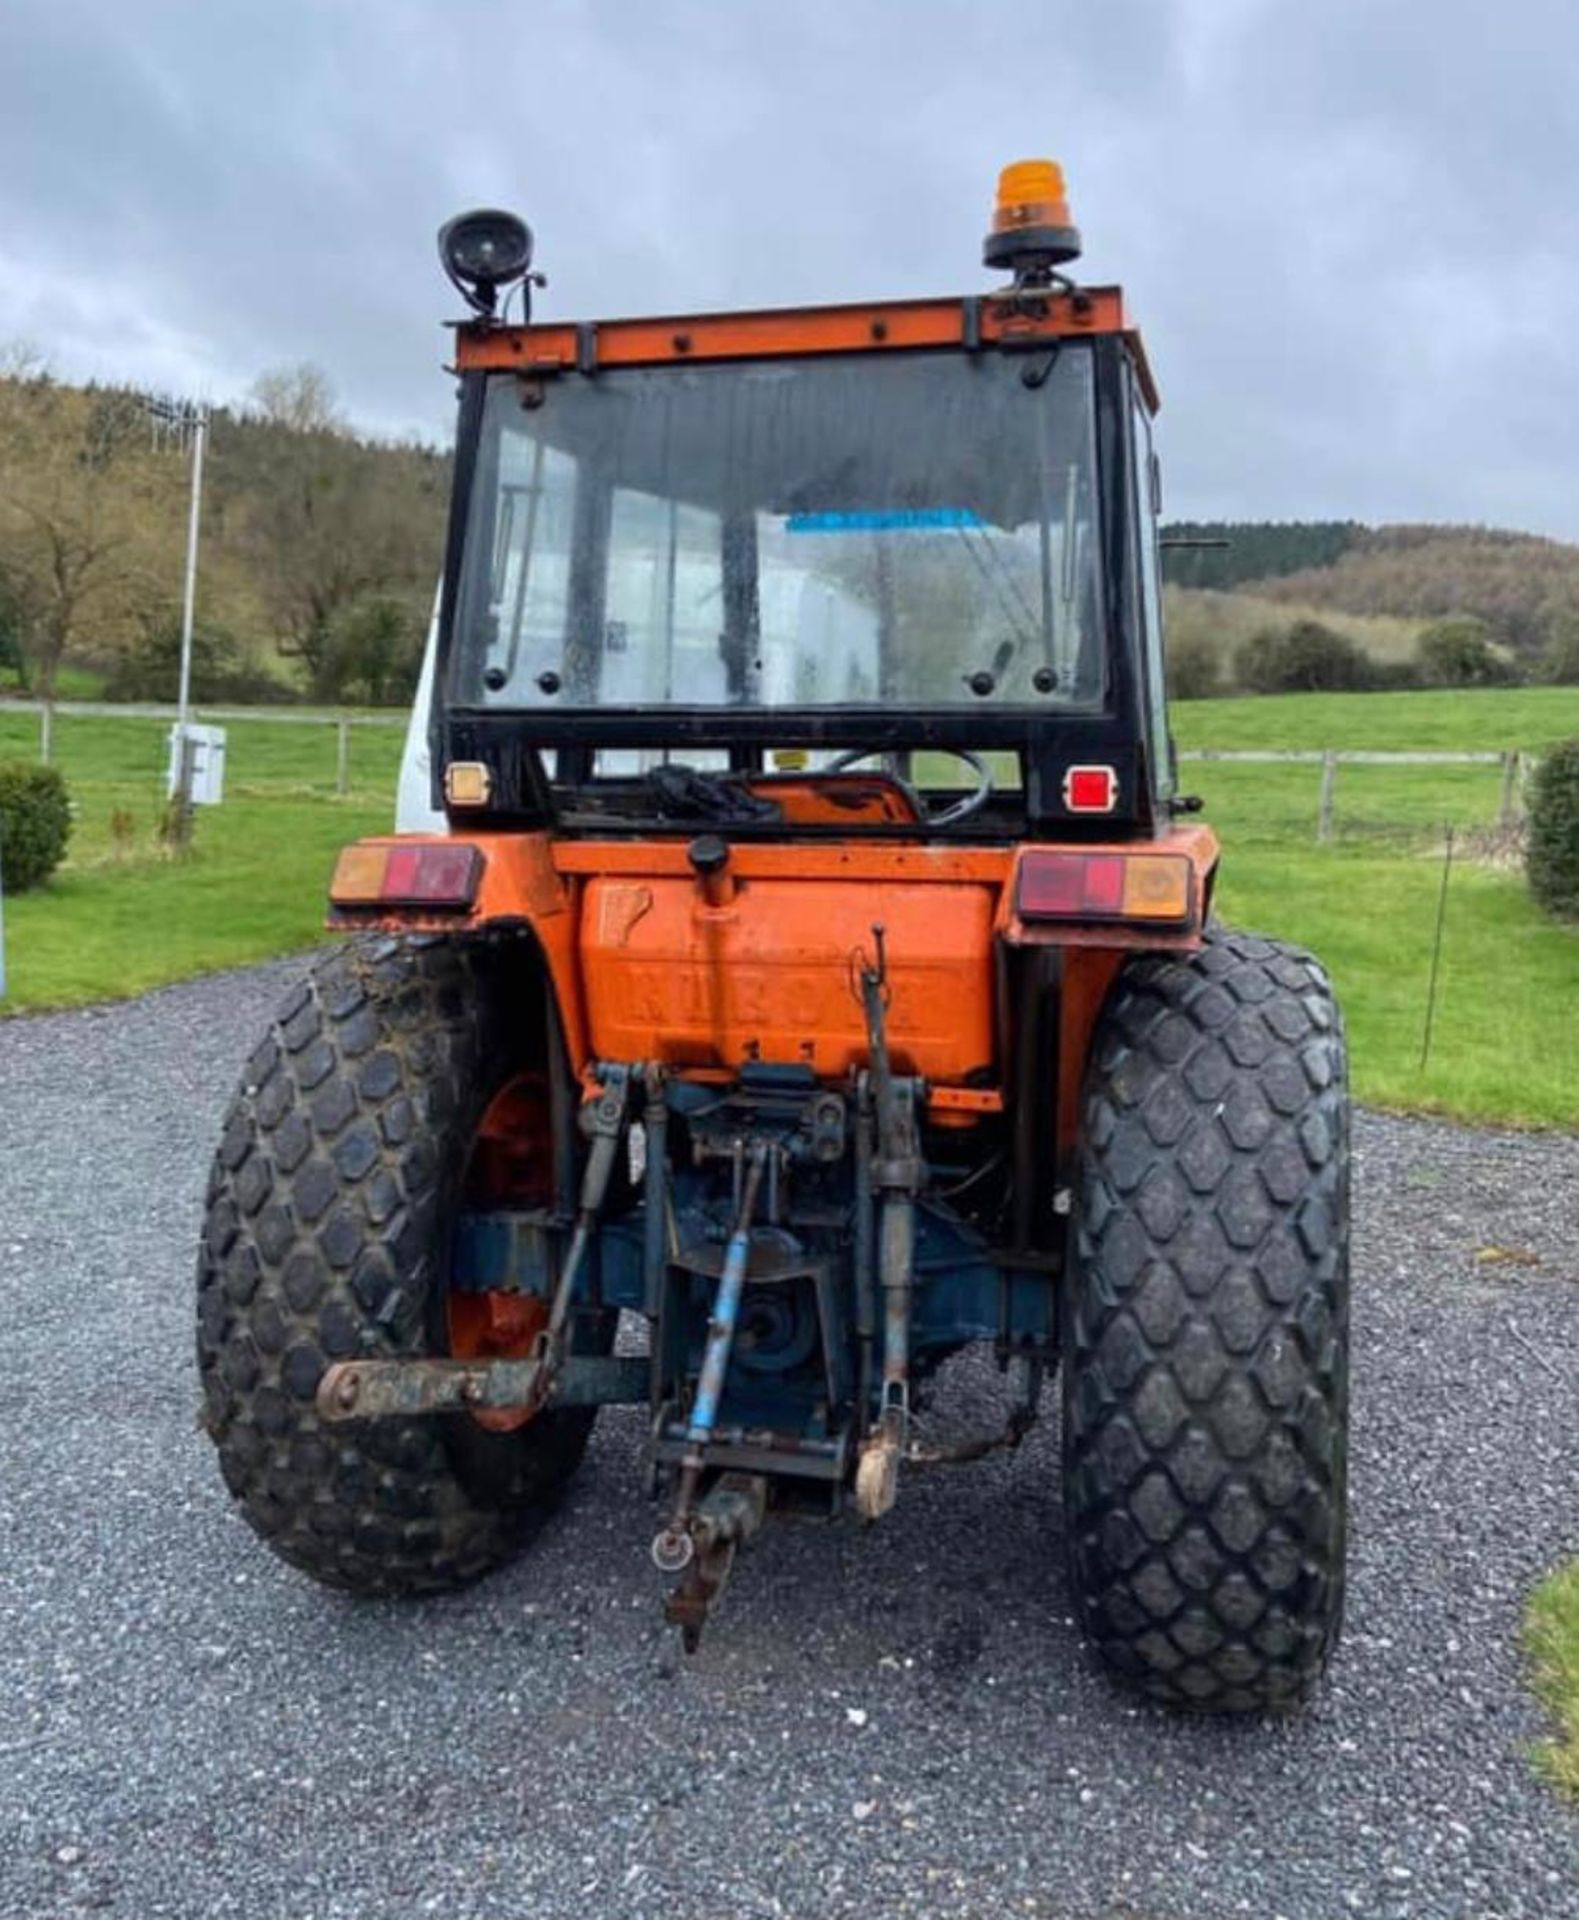 KUBOTA L4150 COMPACT TRACTOR, RUNS AND DRIVES, 3 POINT LINKAGE, 50HP, SHOWING 1236 HOURS *NO VAT* - Image 4 of 4